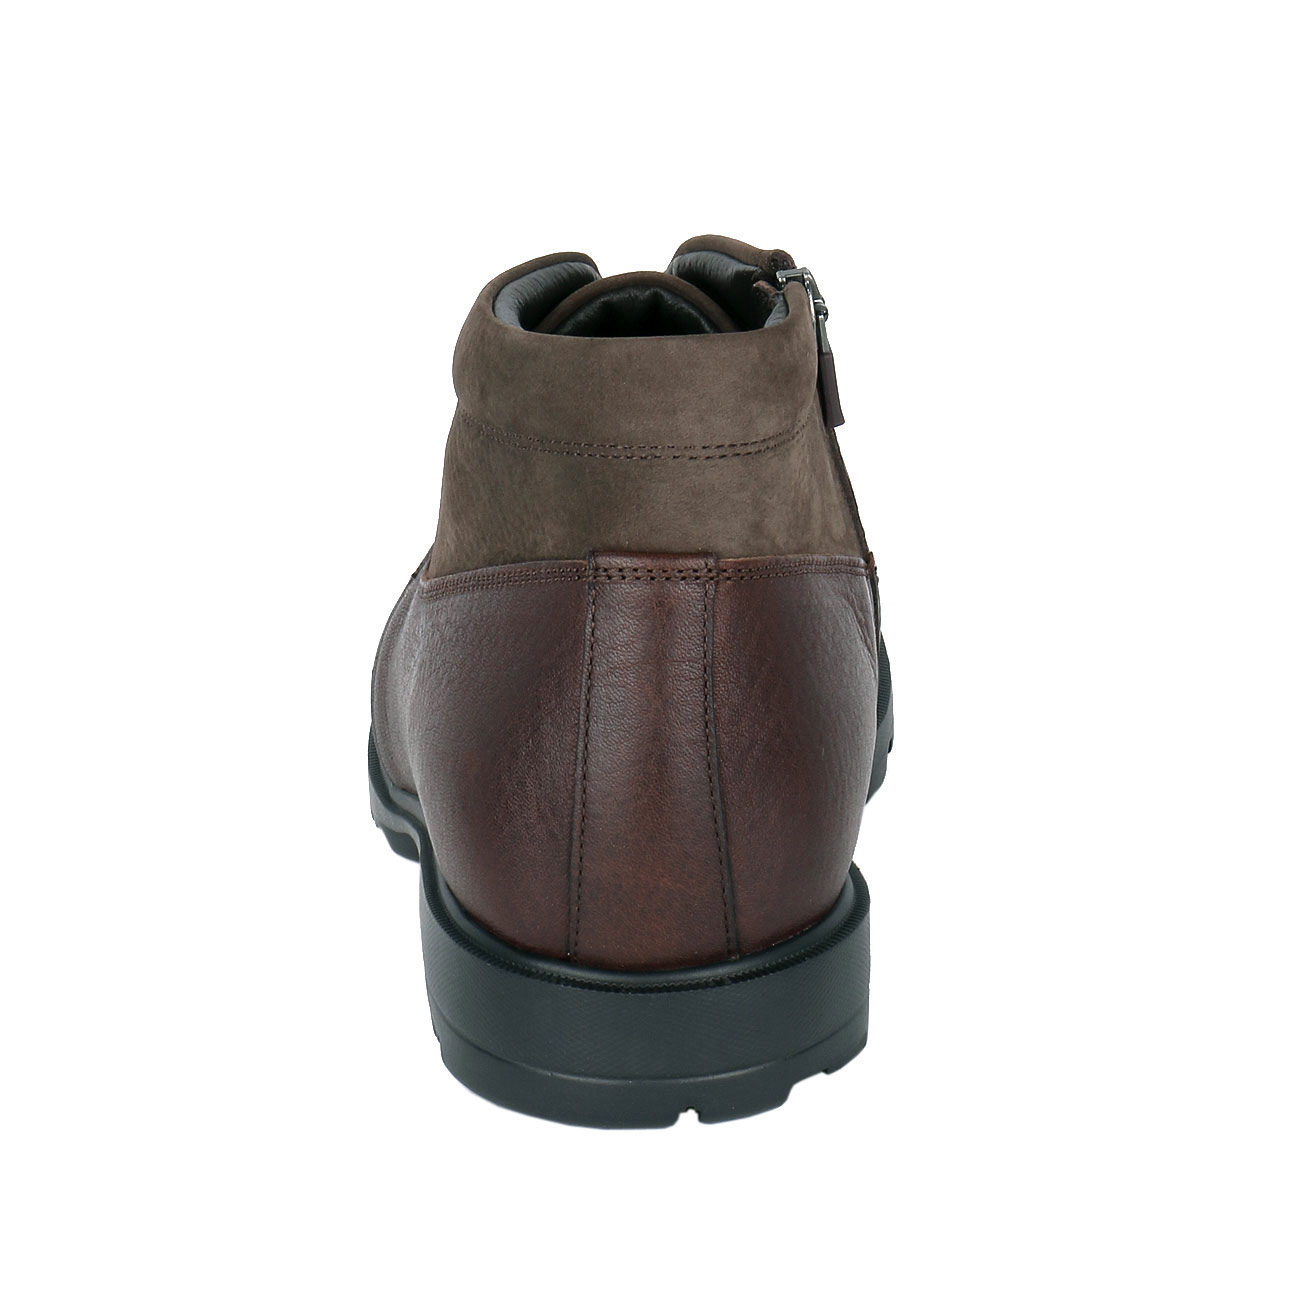 The Men's Height Leather Boot To Enrich Short Height By 2.5 Inch Tall